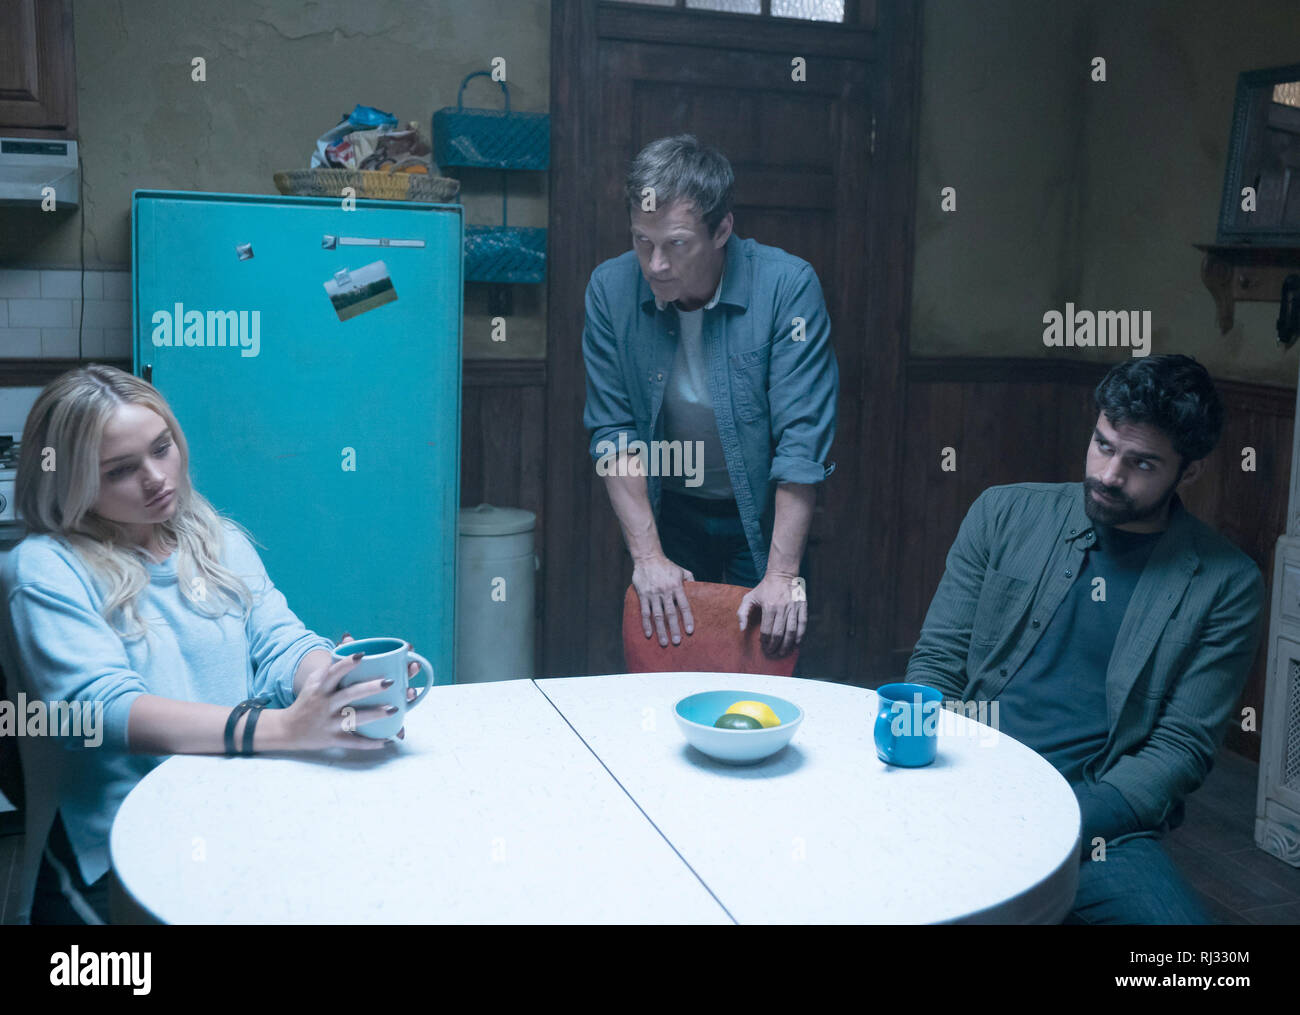 Natalie Alyn Lind, Stephen Moyer, Sean Teale, 'The Gifted' Season 2 (2019)  Credit: Fox Broadcasting Co. / The Hollywood Archive - Stock Image